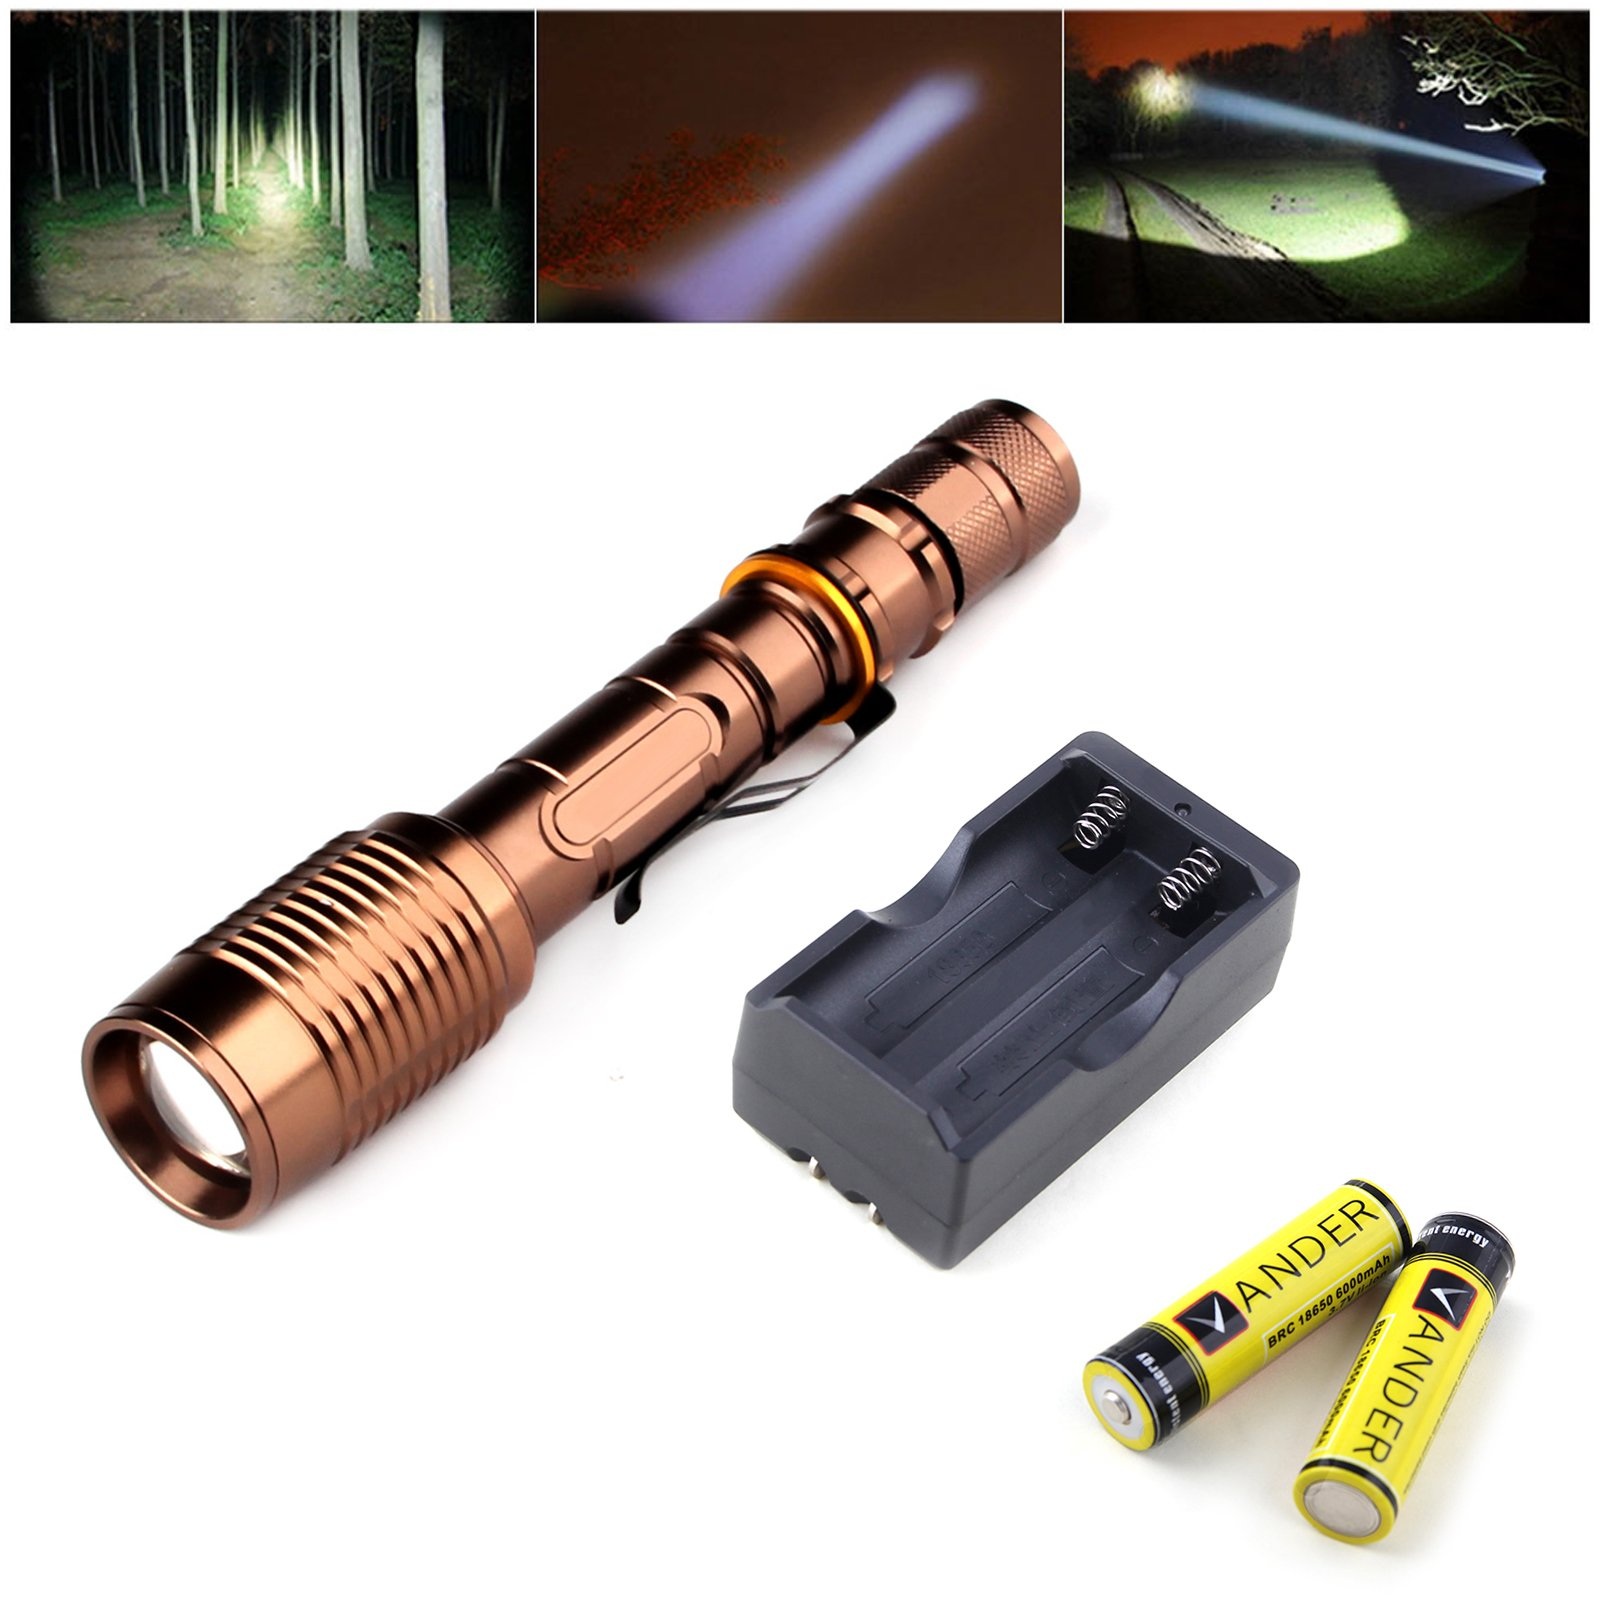 Vander 5 Modes Tactical Flashlights XM-L T6 LED 20000LM Zoomable 5-Mode Bronze Flashlight Torch 2x18650 Batteries Charger by Vander